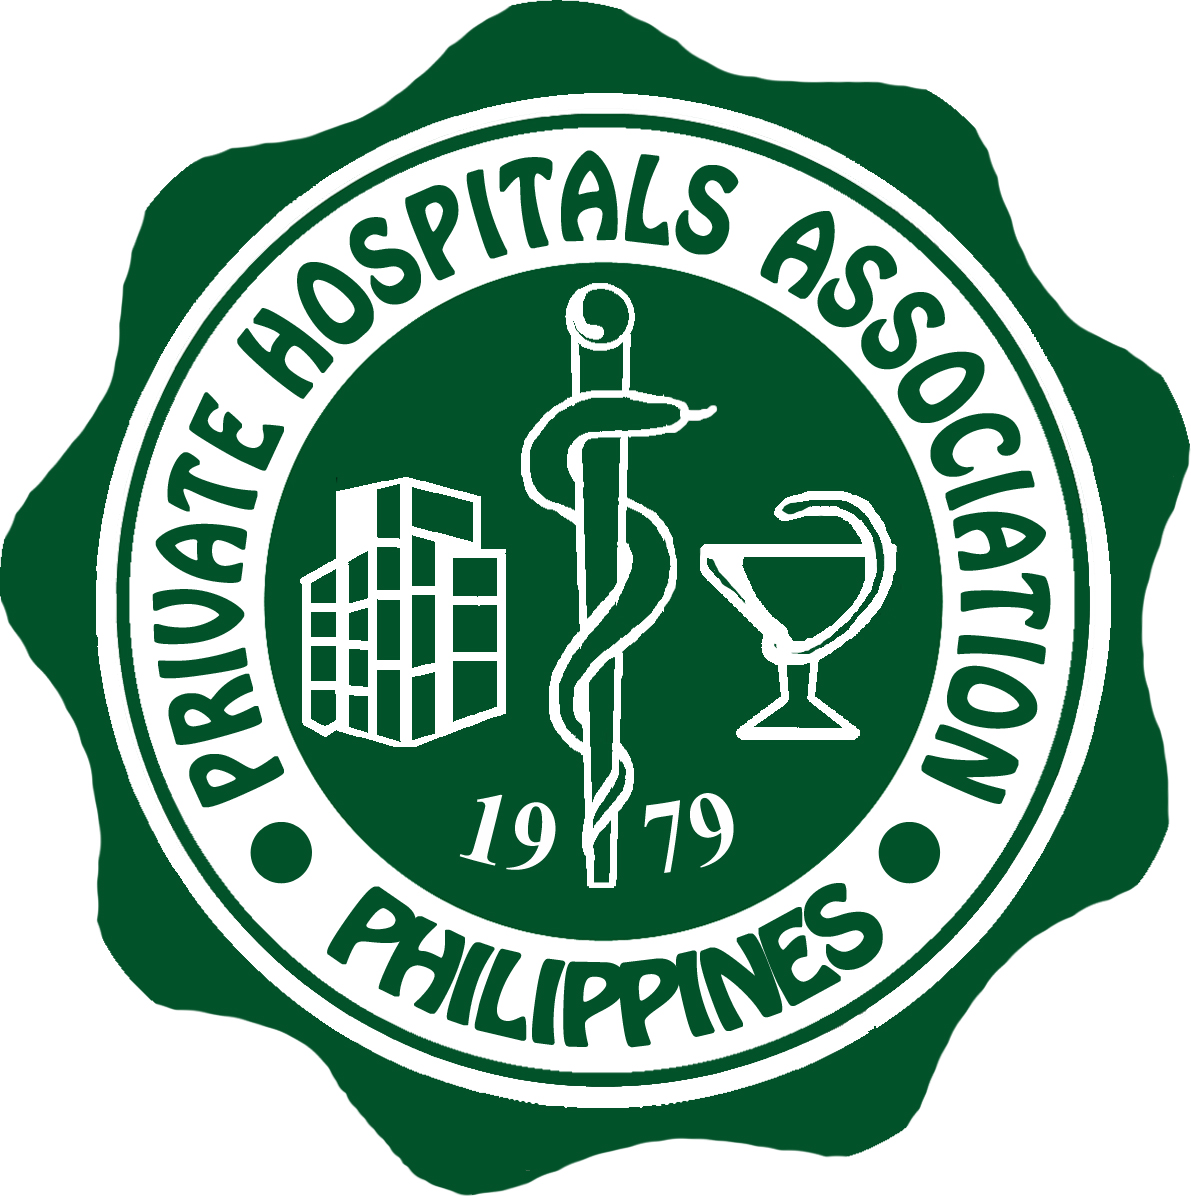 PRIVATE HOSPITALS ASSOCIATION OF THE PHILIPPINES, INC. (PHAPi) Logo